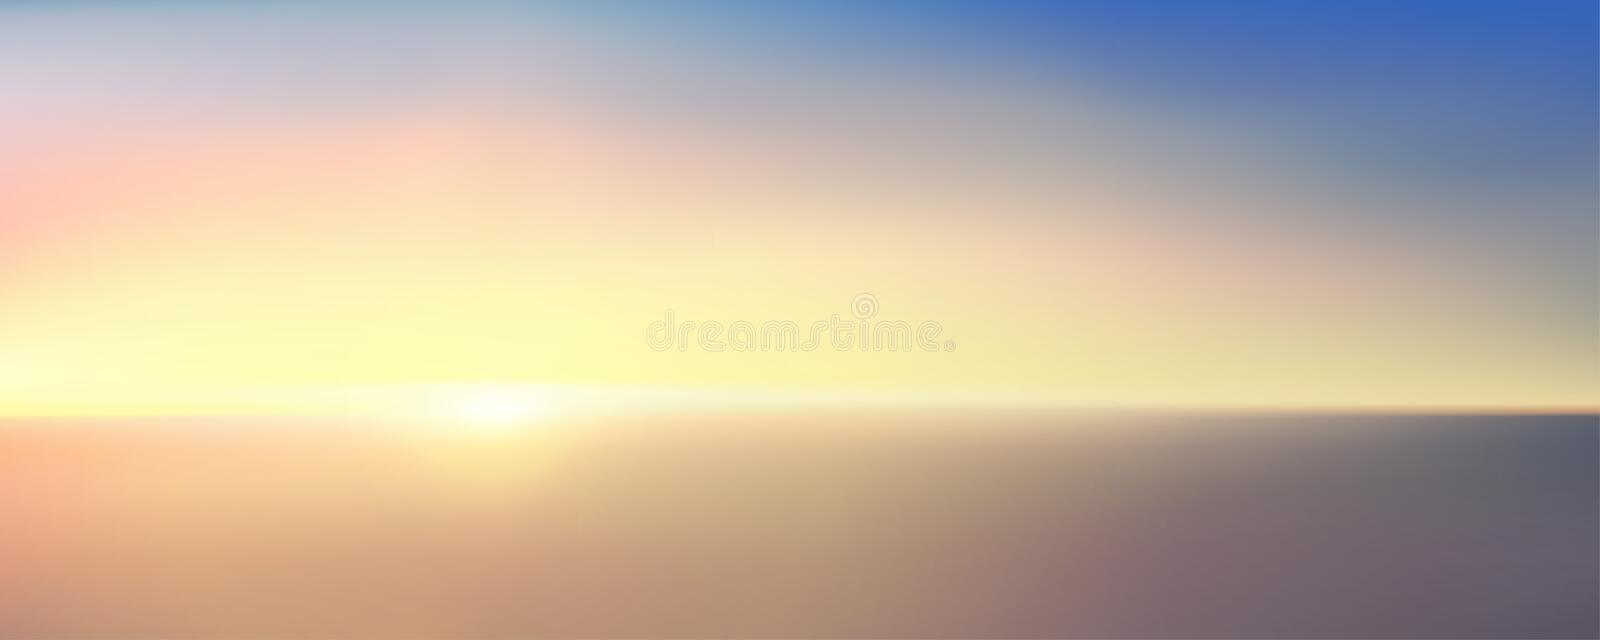 Abstract aerial panoramic view of sunrise over ocean. Nothing but blue bright sky and deep dark water. Beautiful serene scene. vector illustration